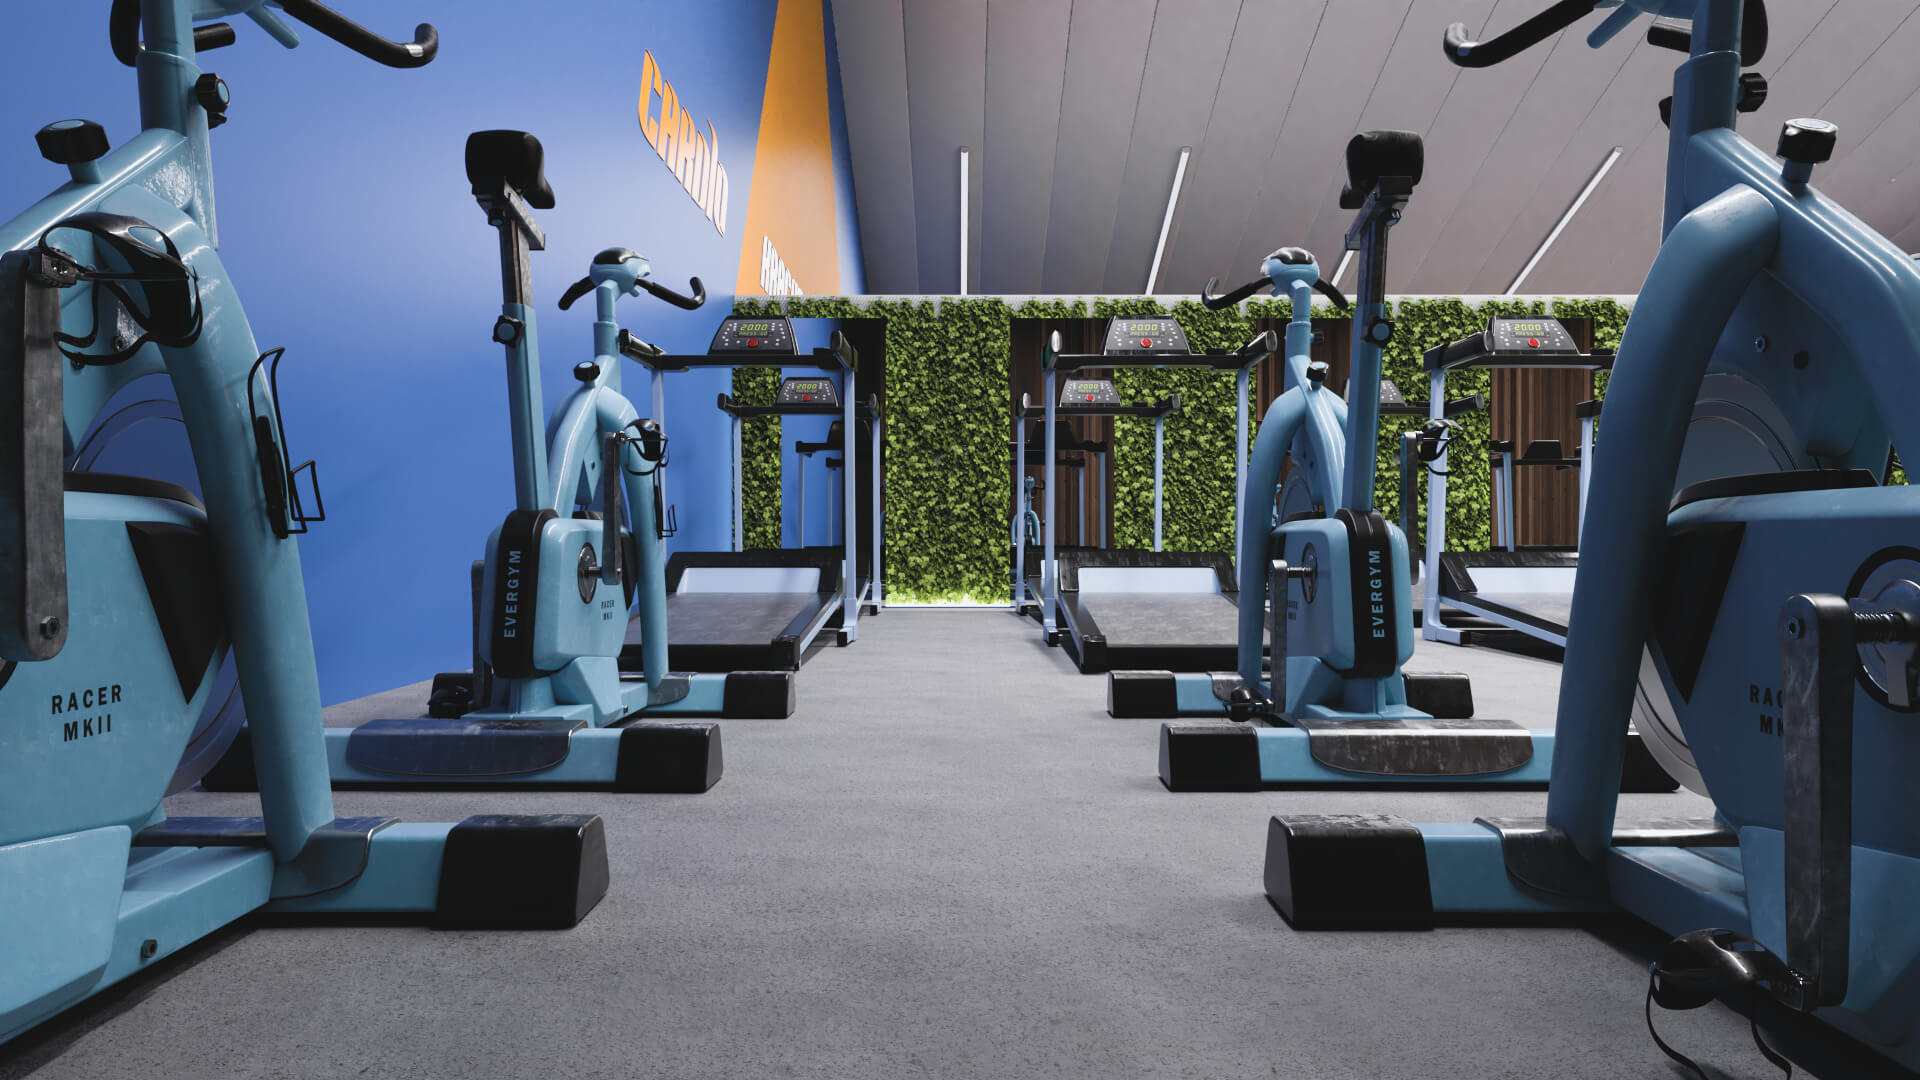 Open Space Gym Renovation